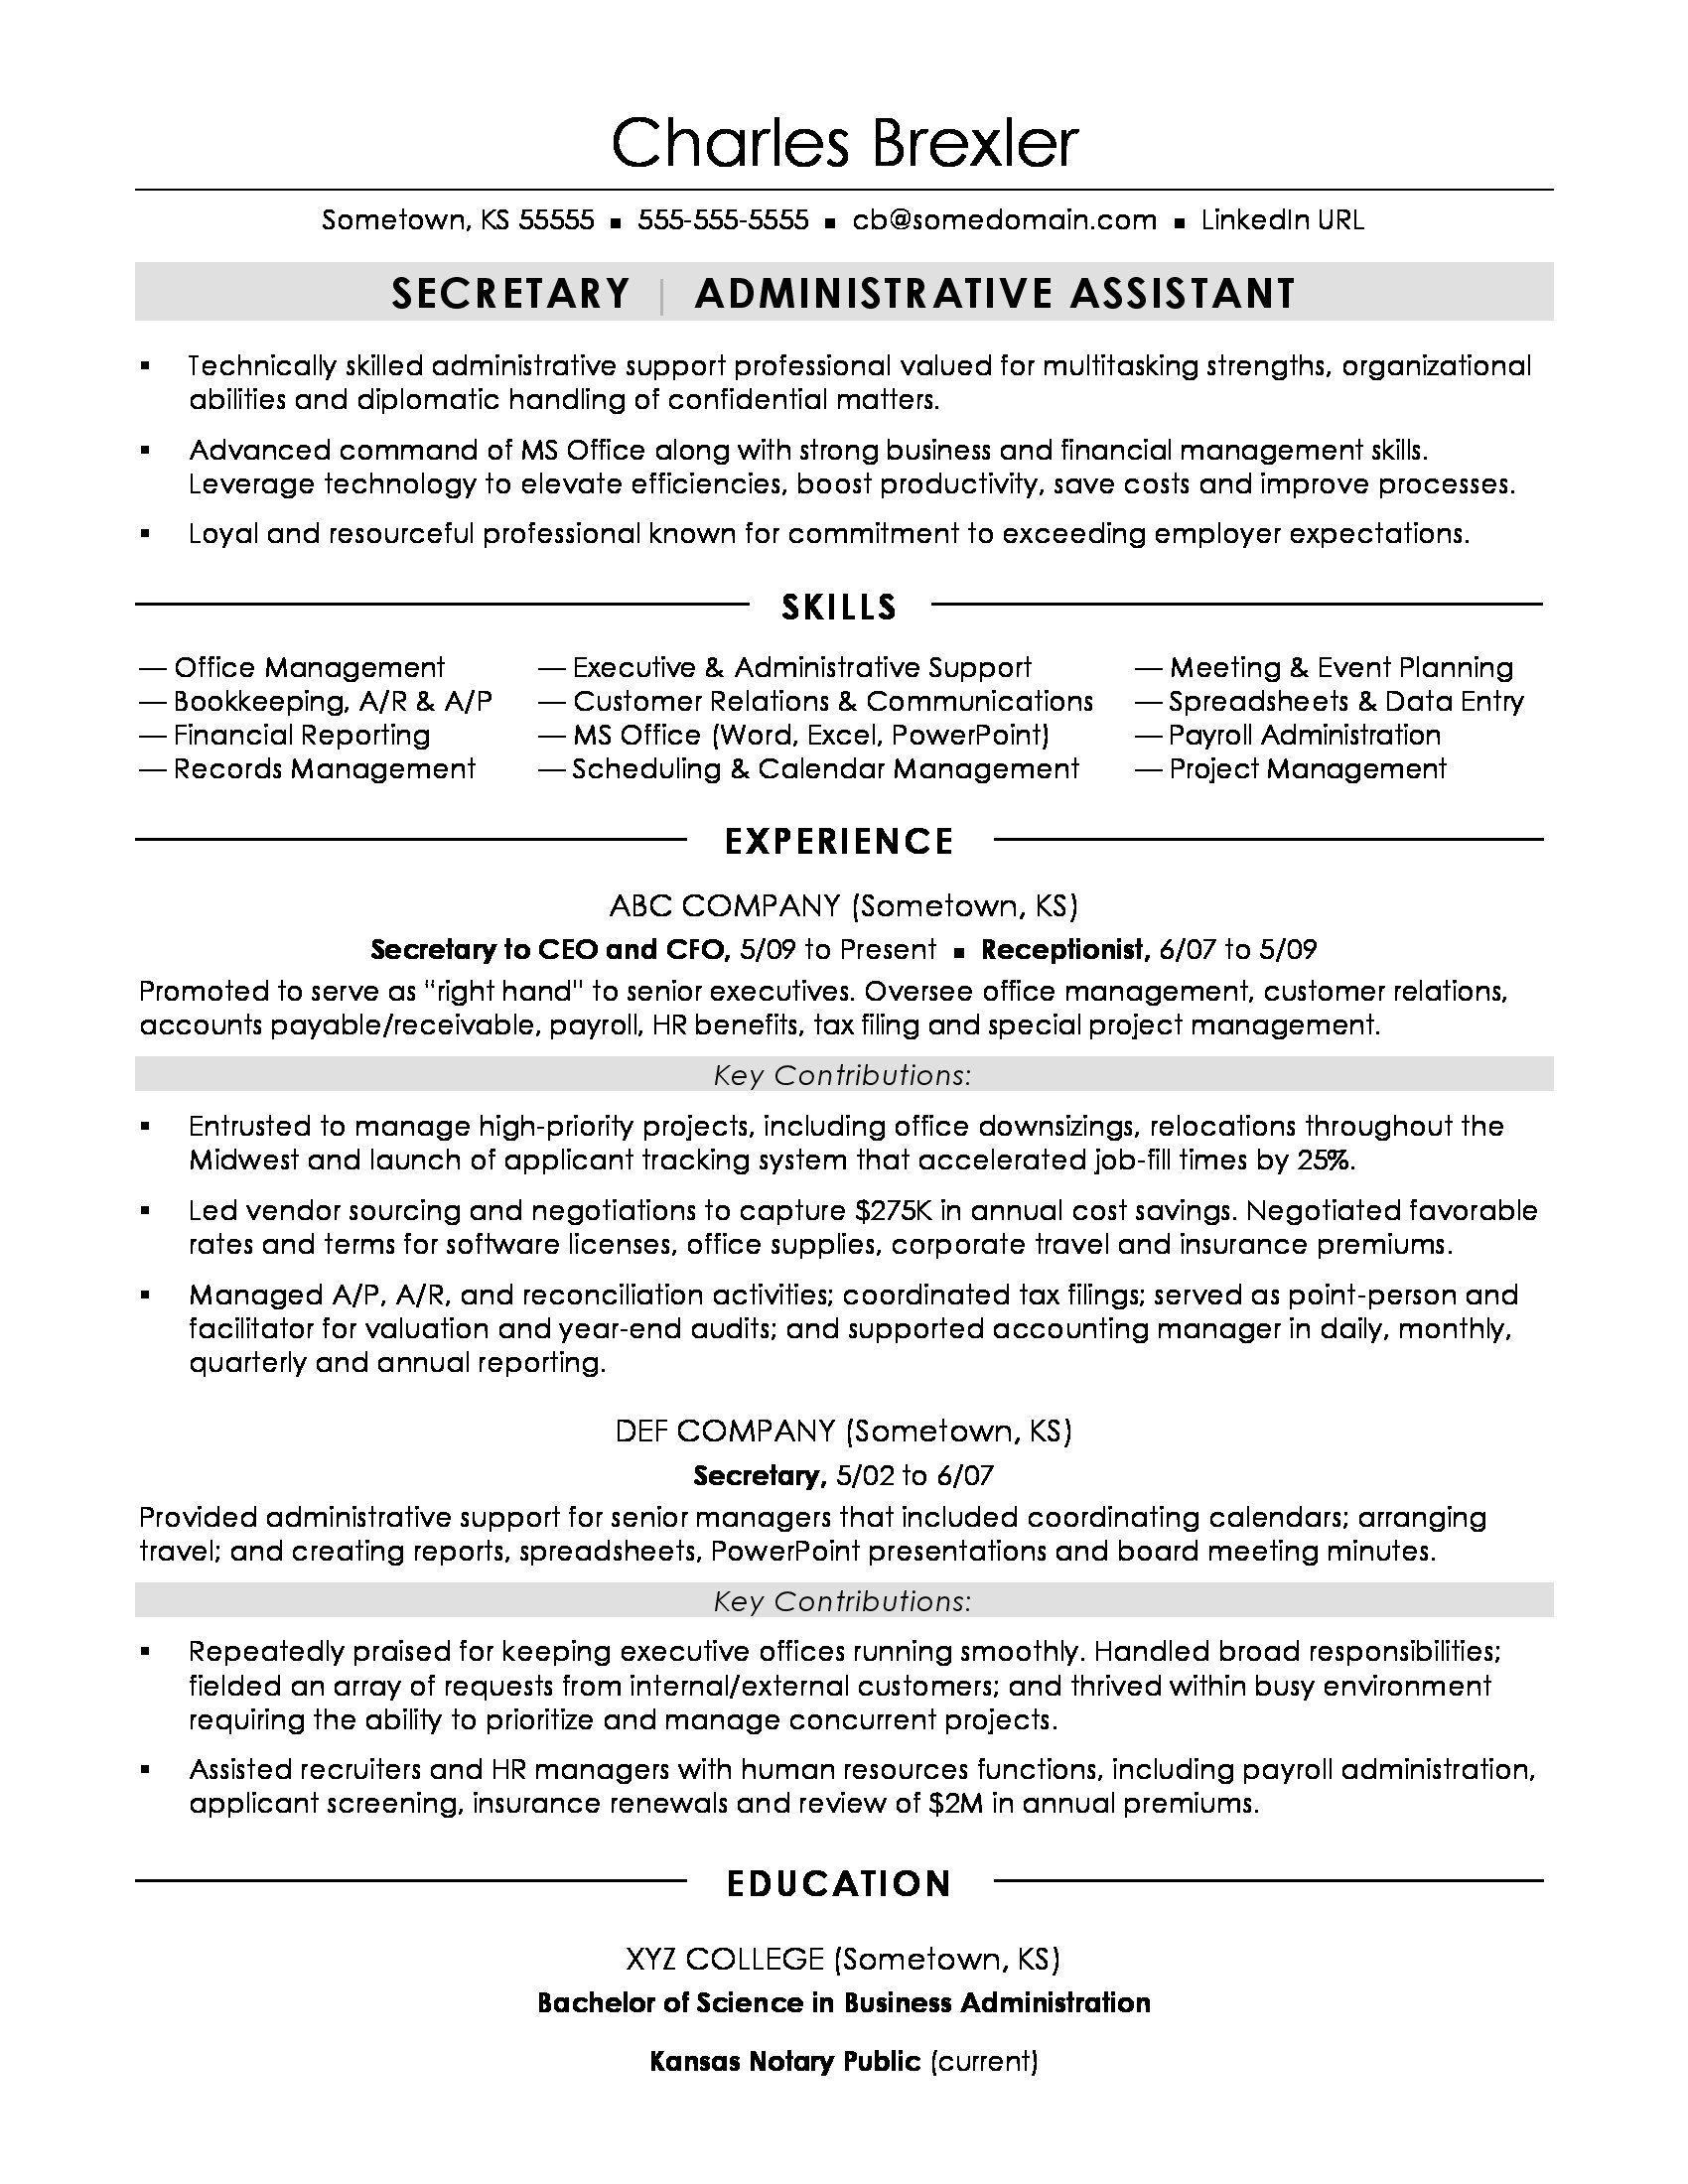 secretary resume sample monster format marketing consultant for masters application Resume Secretary Resume Format